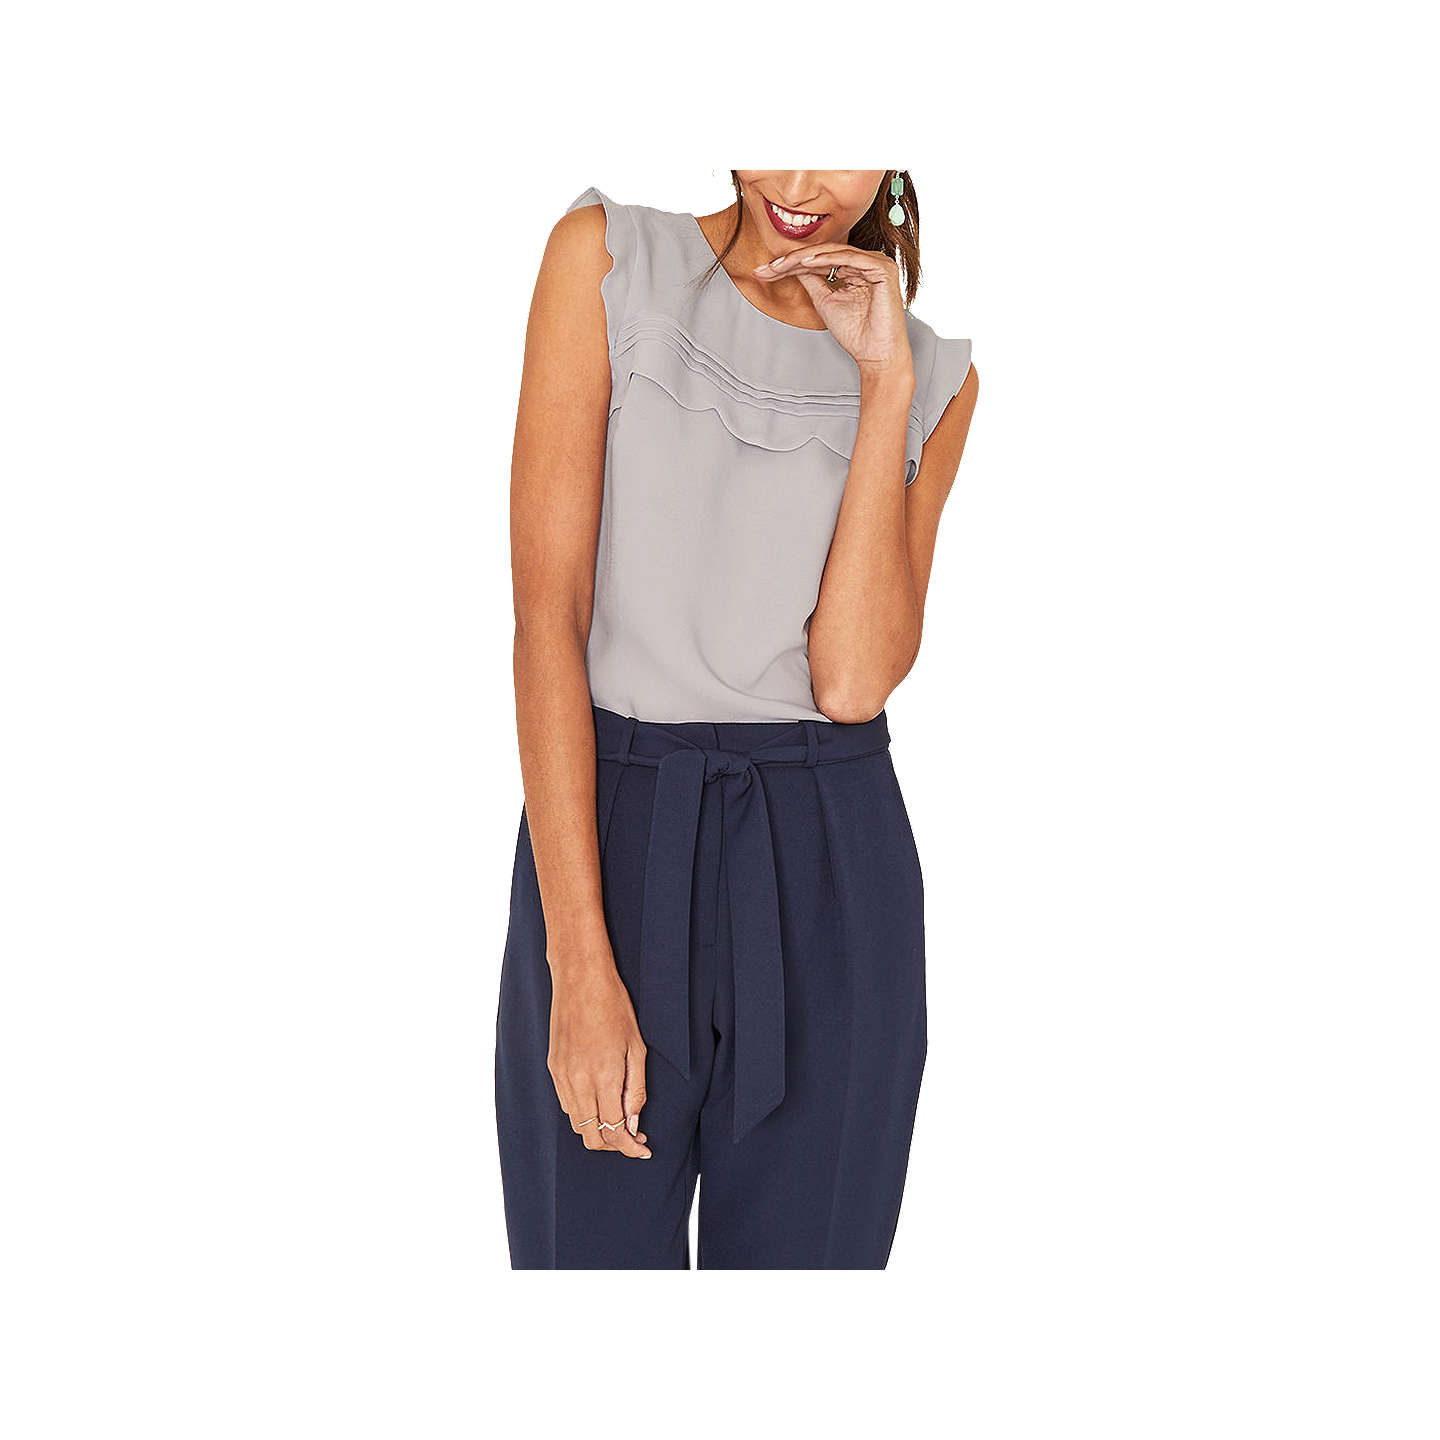 BuyOasis Scallop Shell Top, Mid Grey, 6 Online at johnlewis.com ...